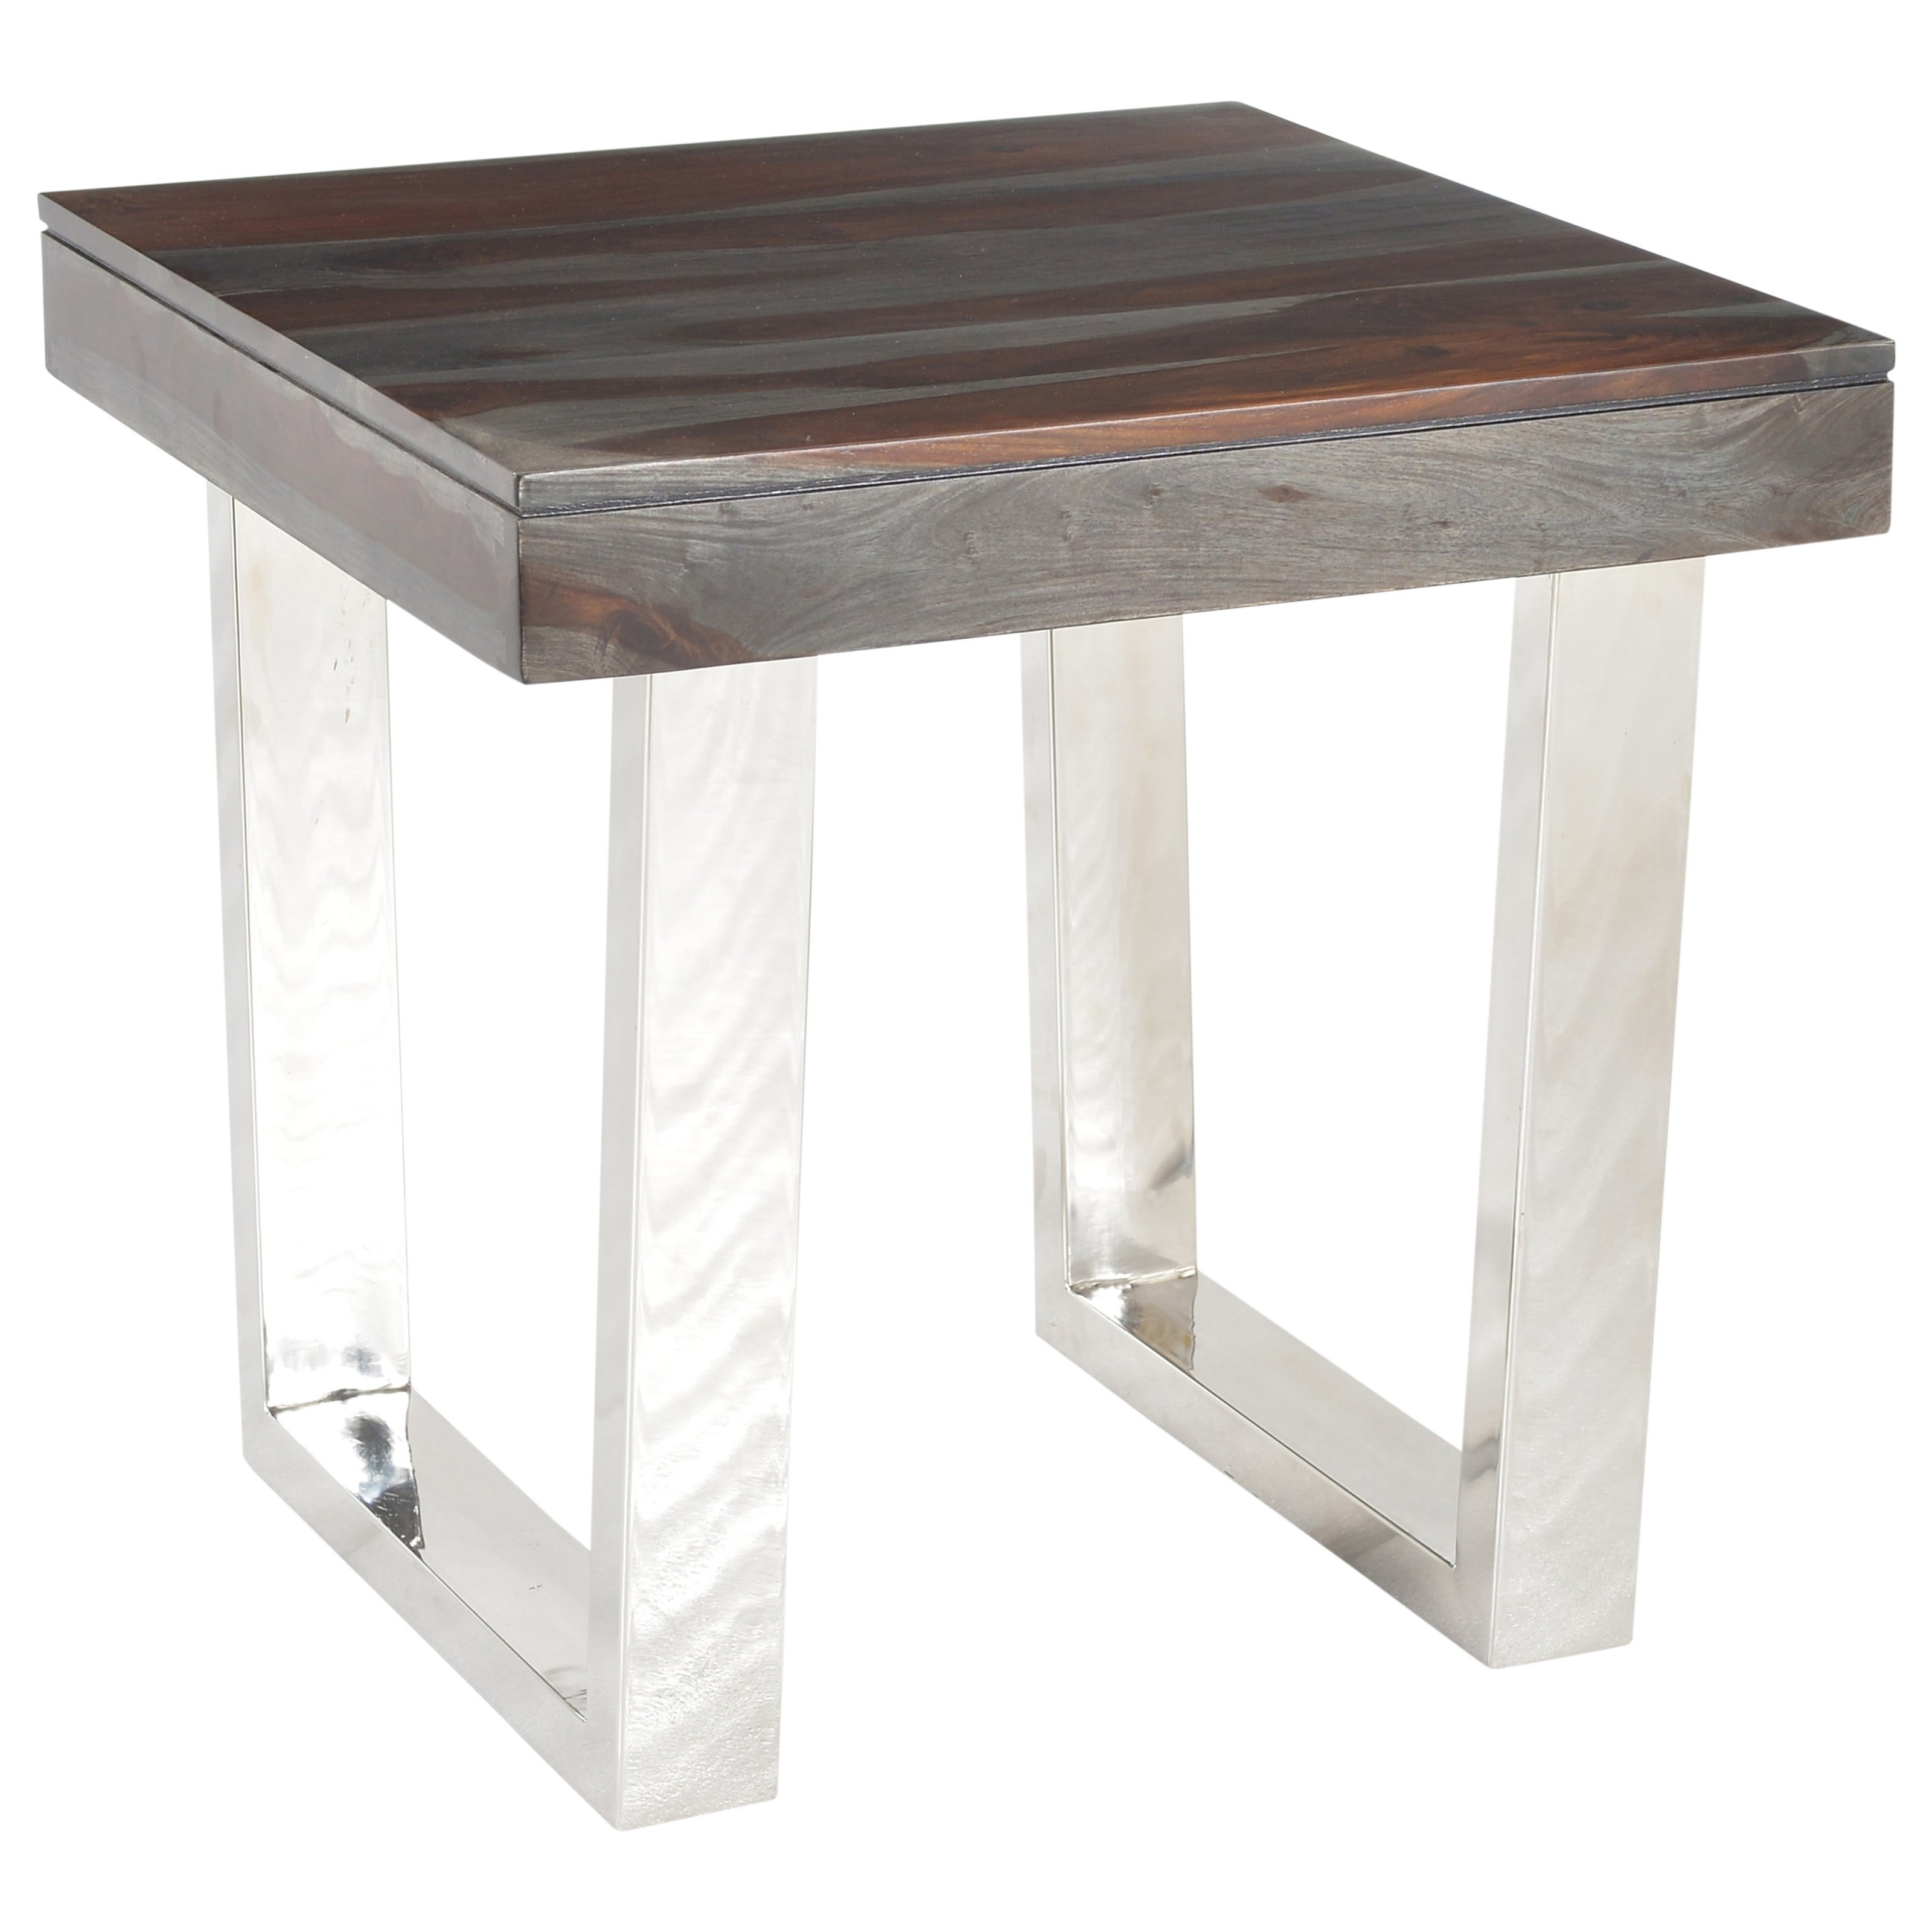 Coast to Coast Imports Cosmopolitan End Table - Item Number: 93453